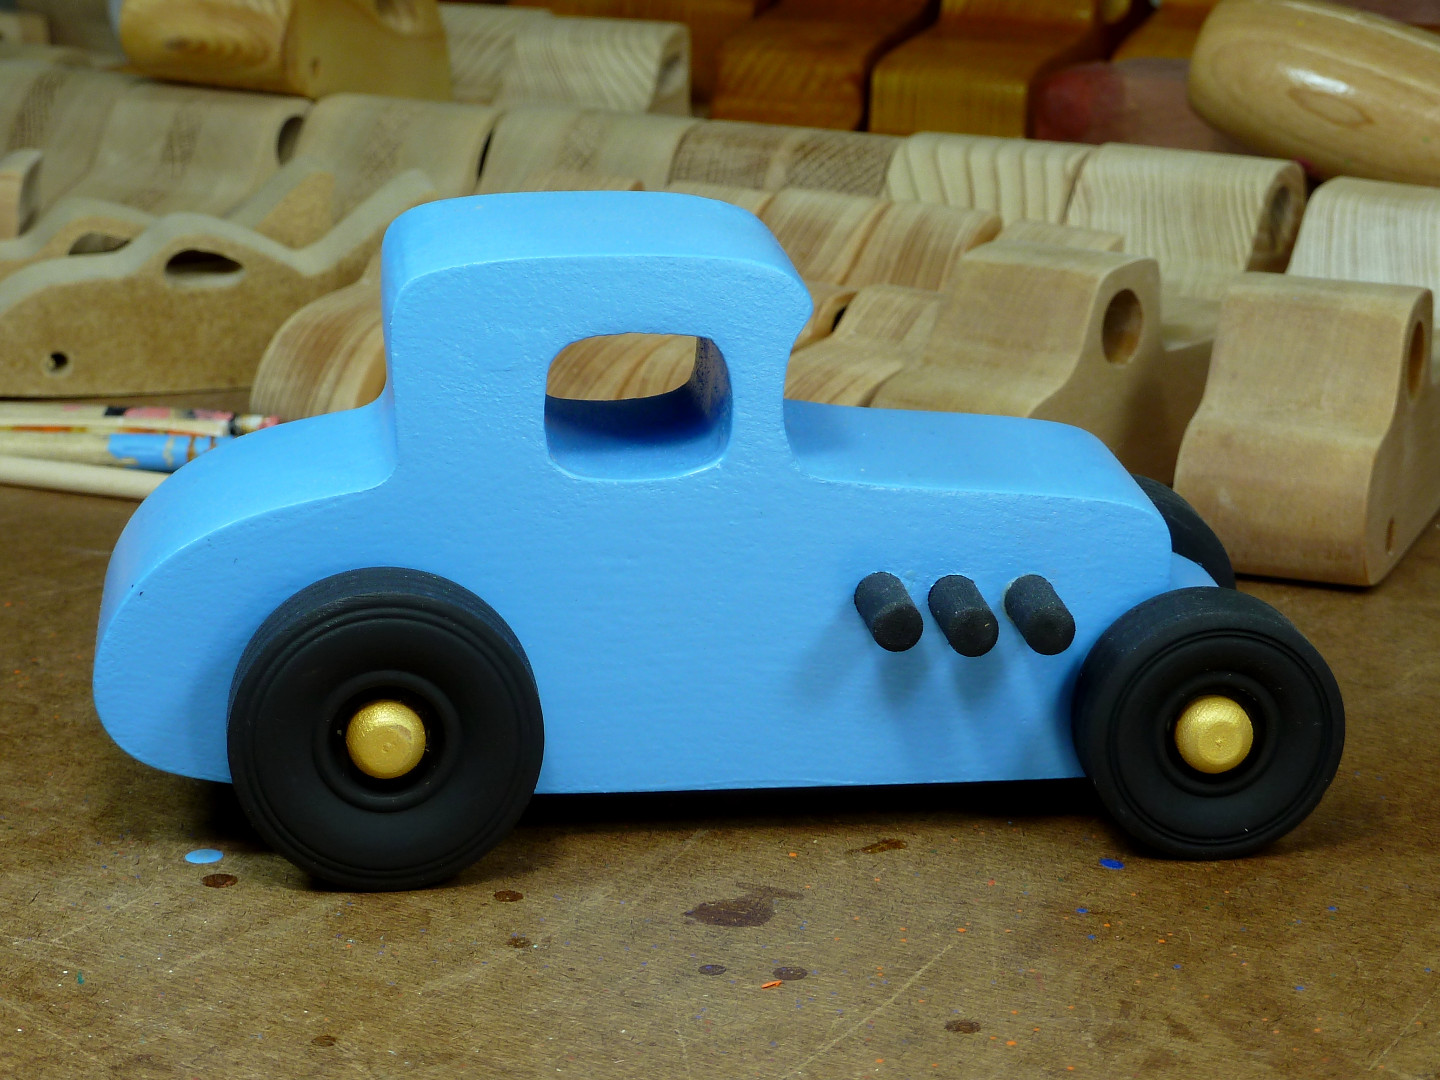 20170522-192626 Wooden Toy Car - Hot Rod Freaky Ford - 27 T Coupe - MDF - Blue - Black - Gold 03.jpg